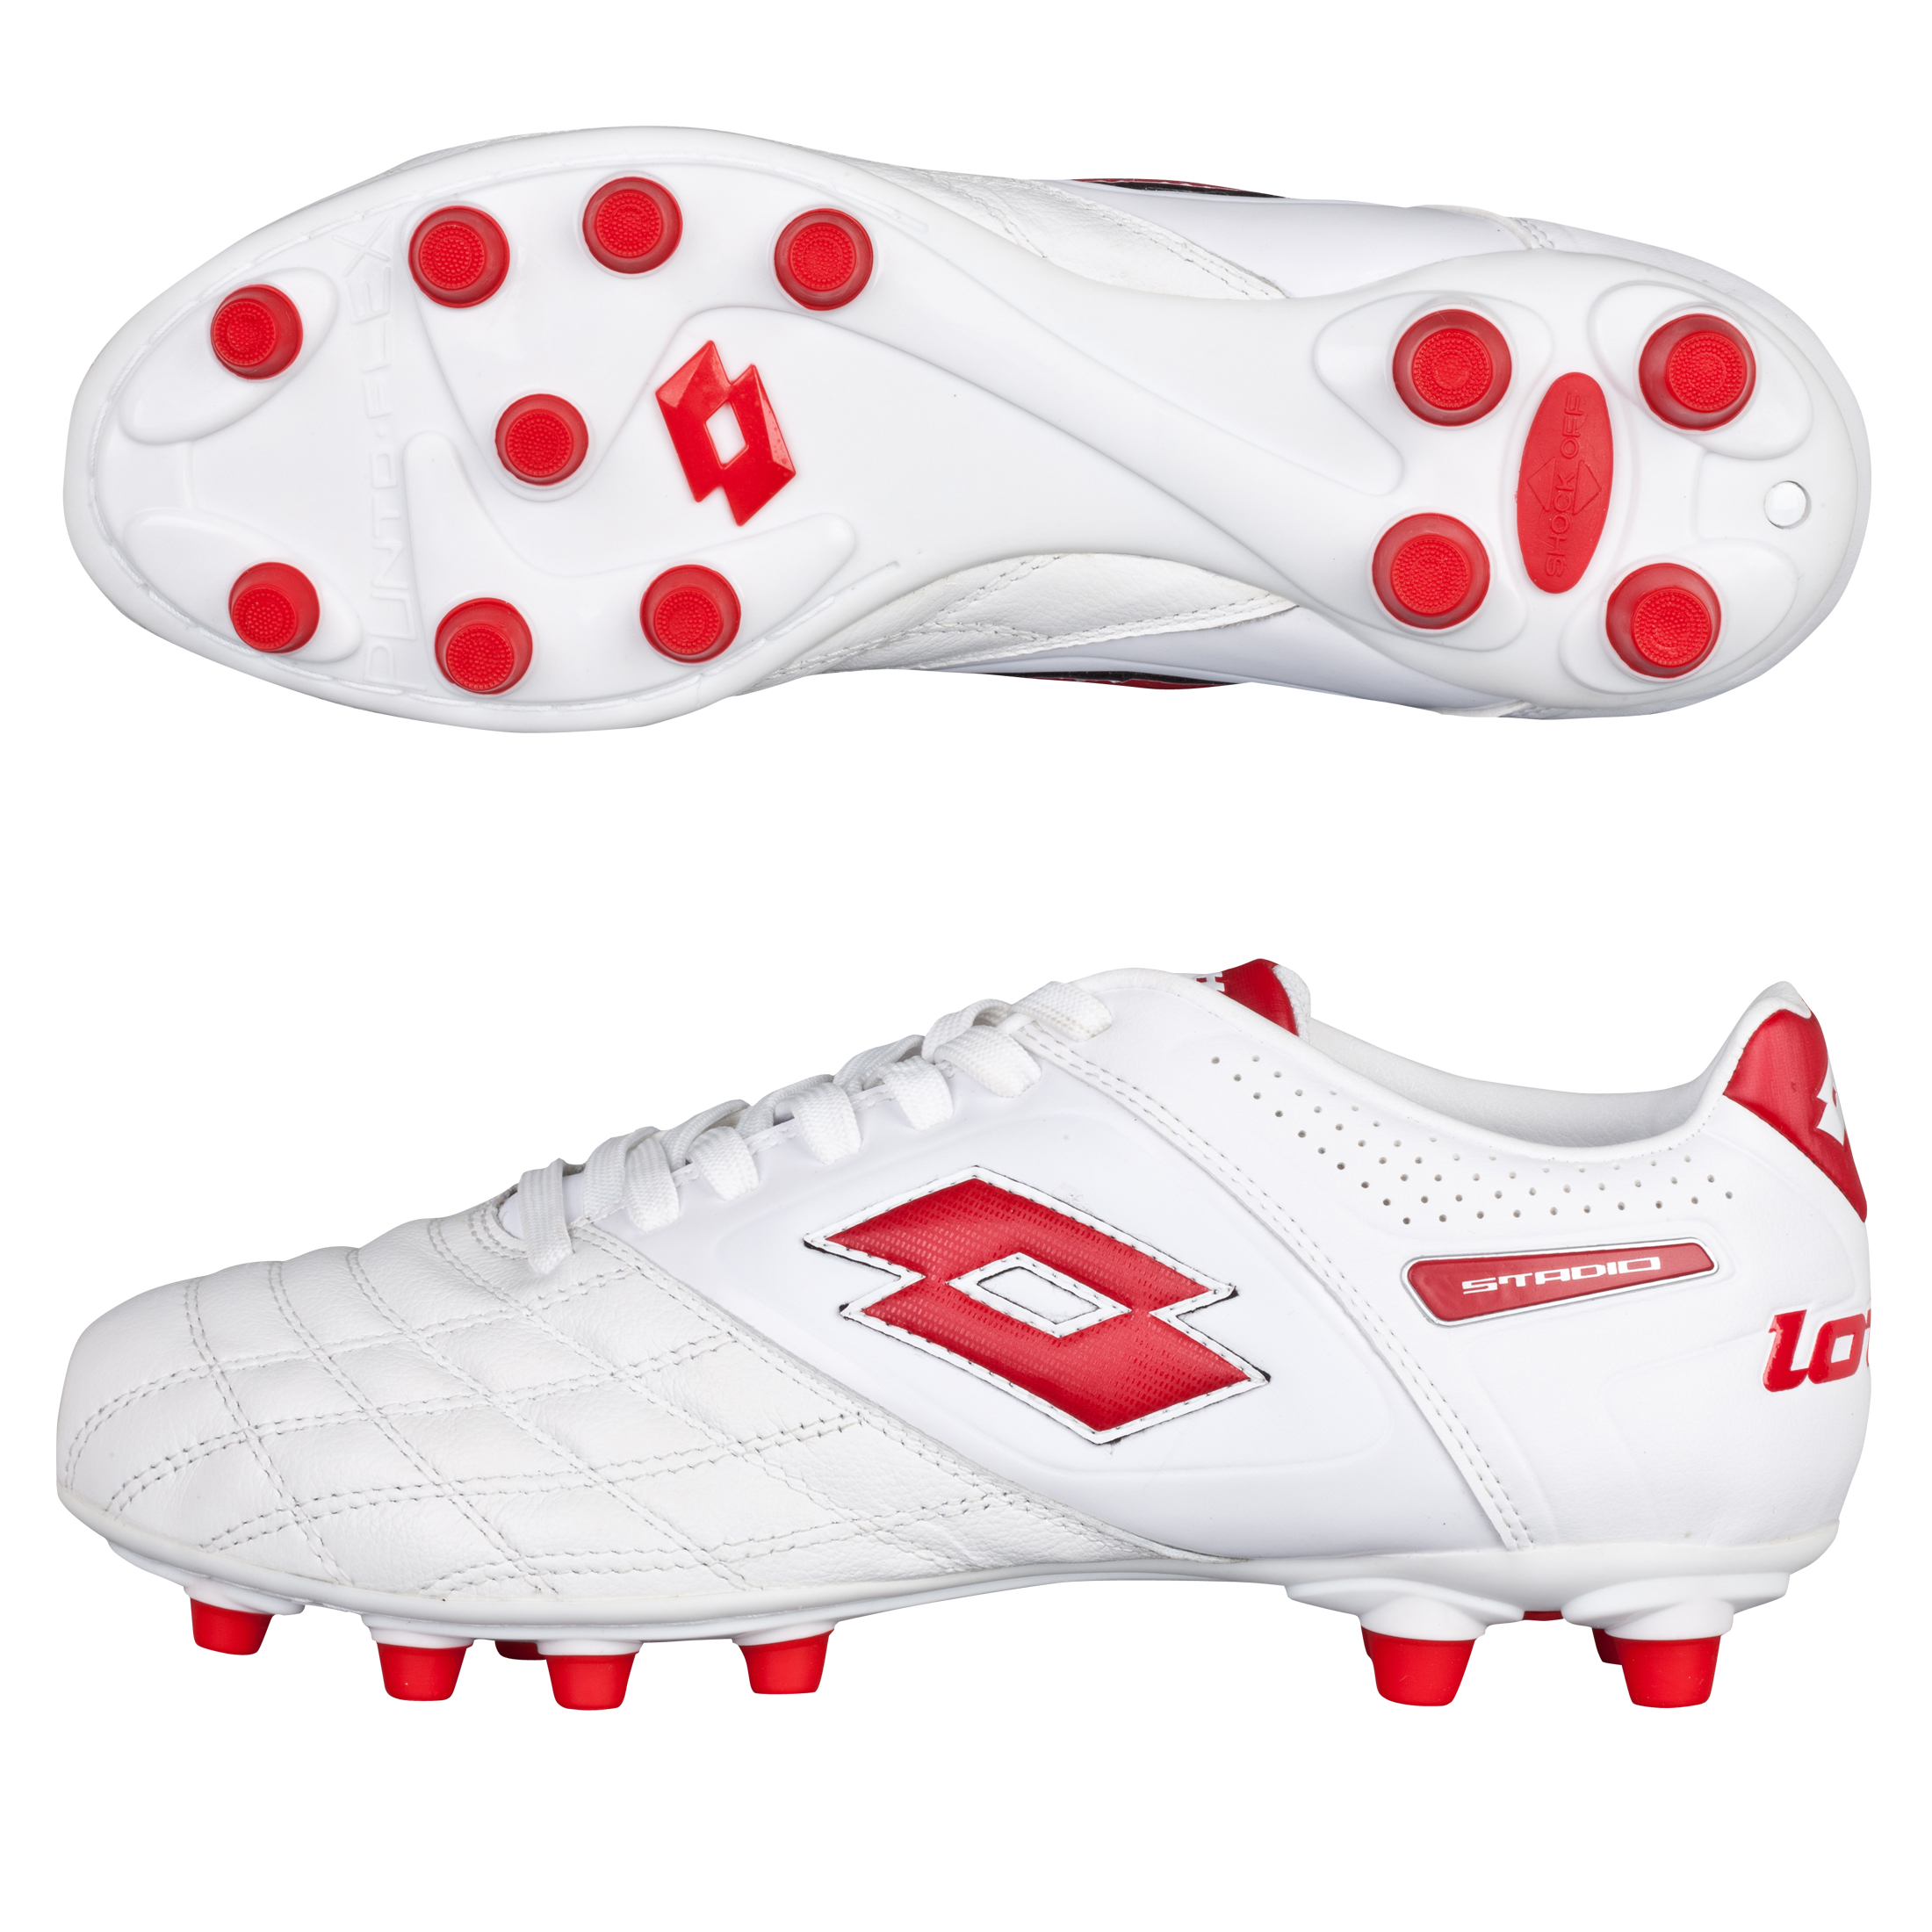 Lotto Stadio Potenza II 300 FG White/Risk Red